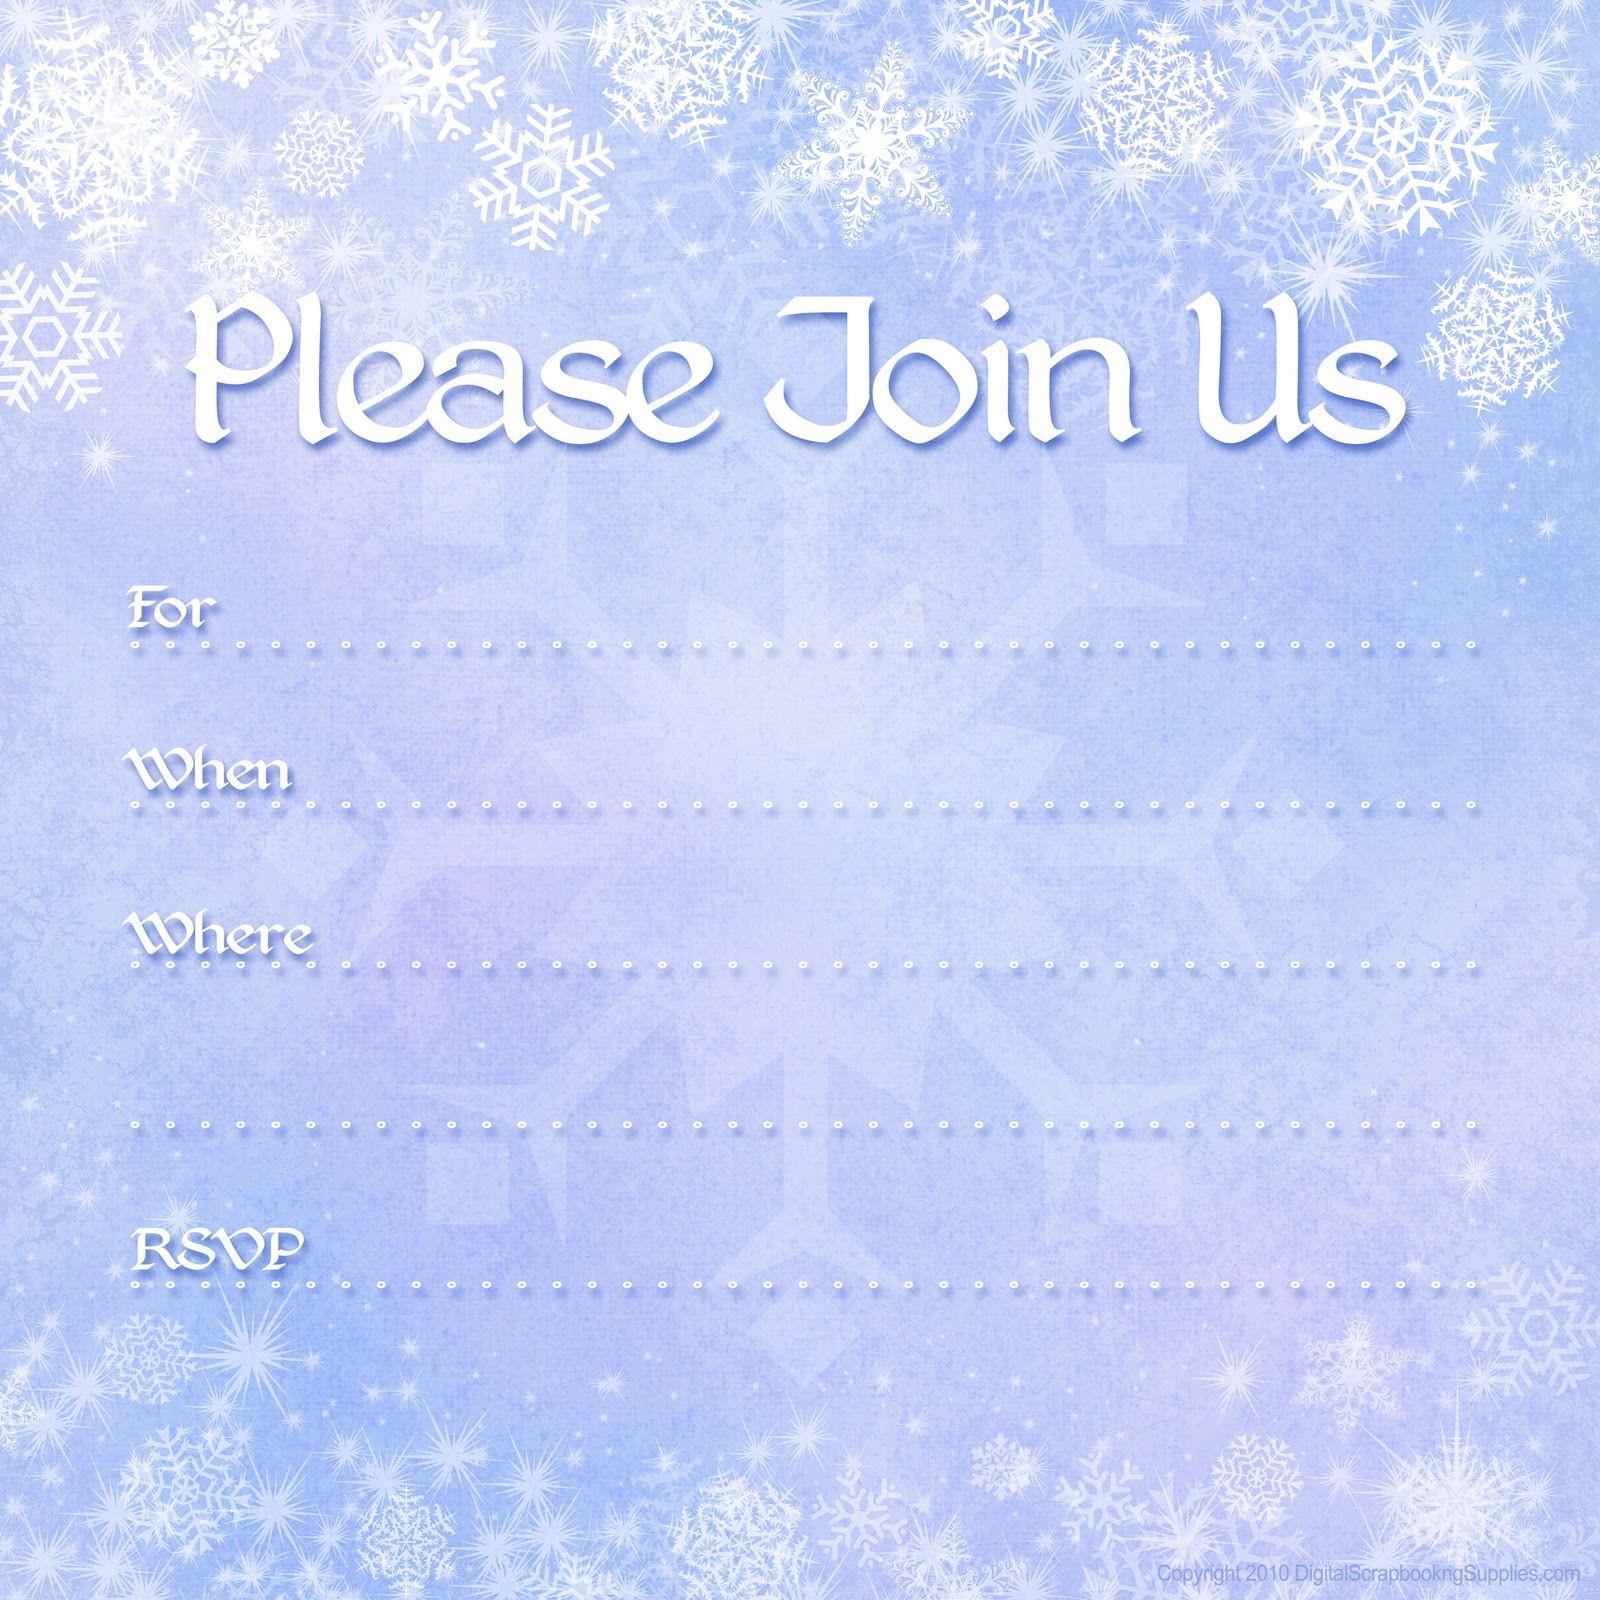 free printable invites free printable party invitations free winter holiday invitations free party invitation